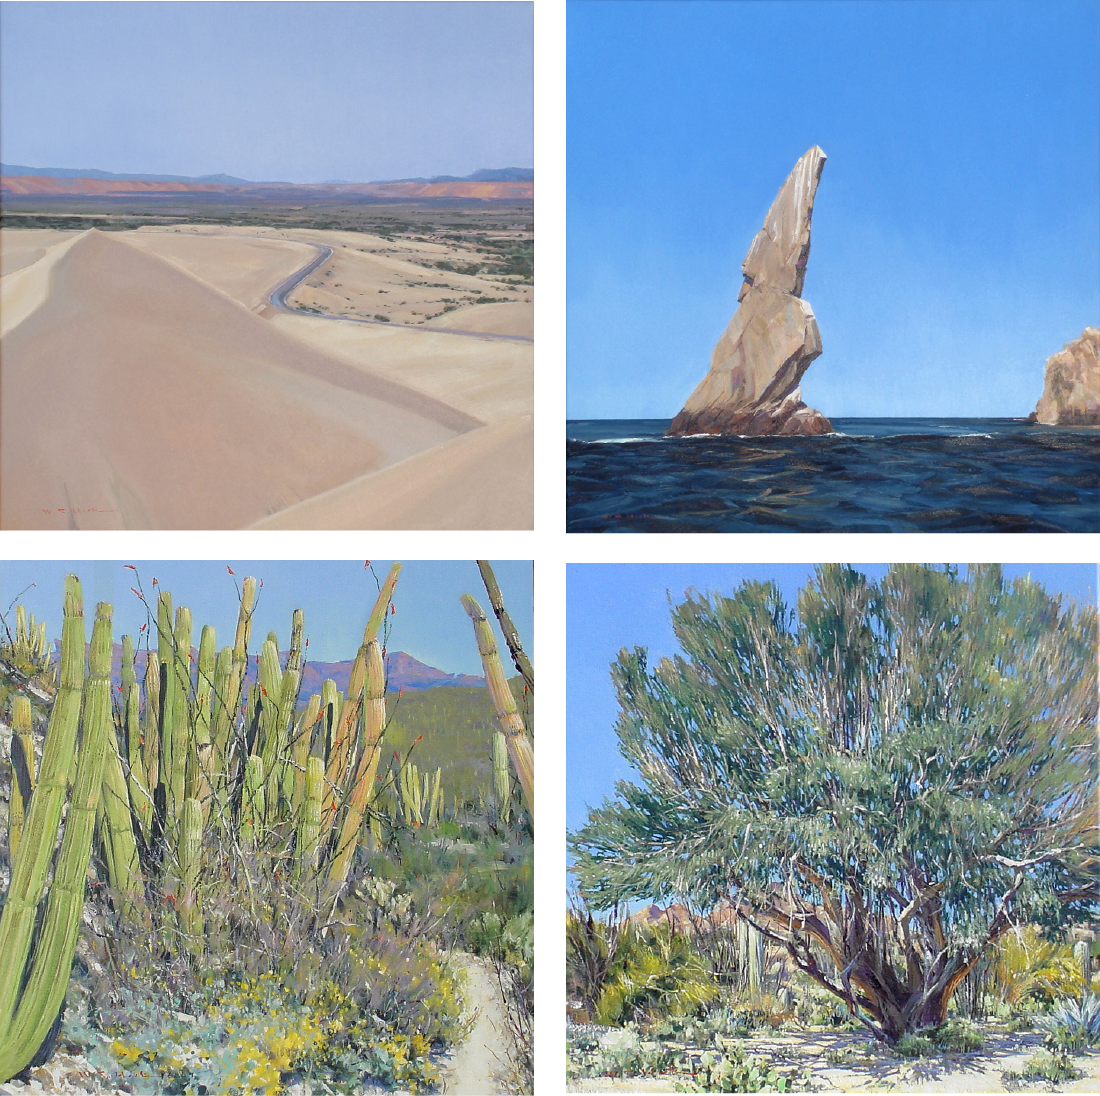 Line in the Sand 24 x 24  Tropic of Cancer 24 x 24 Organ Pipe 24 x 24 Ironwood Tree 24 x 24   Permanent Collection - Arizona-Sonora Desert Museum